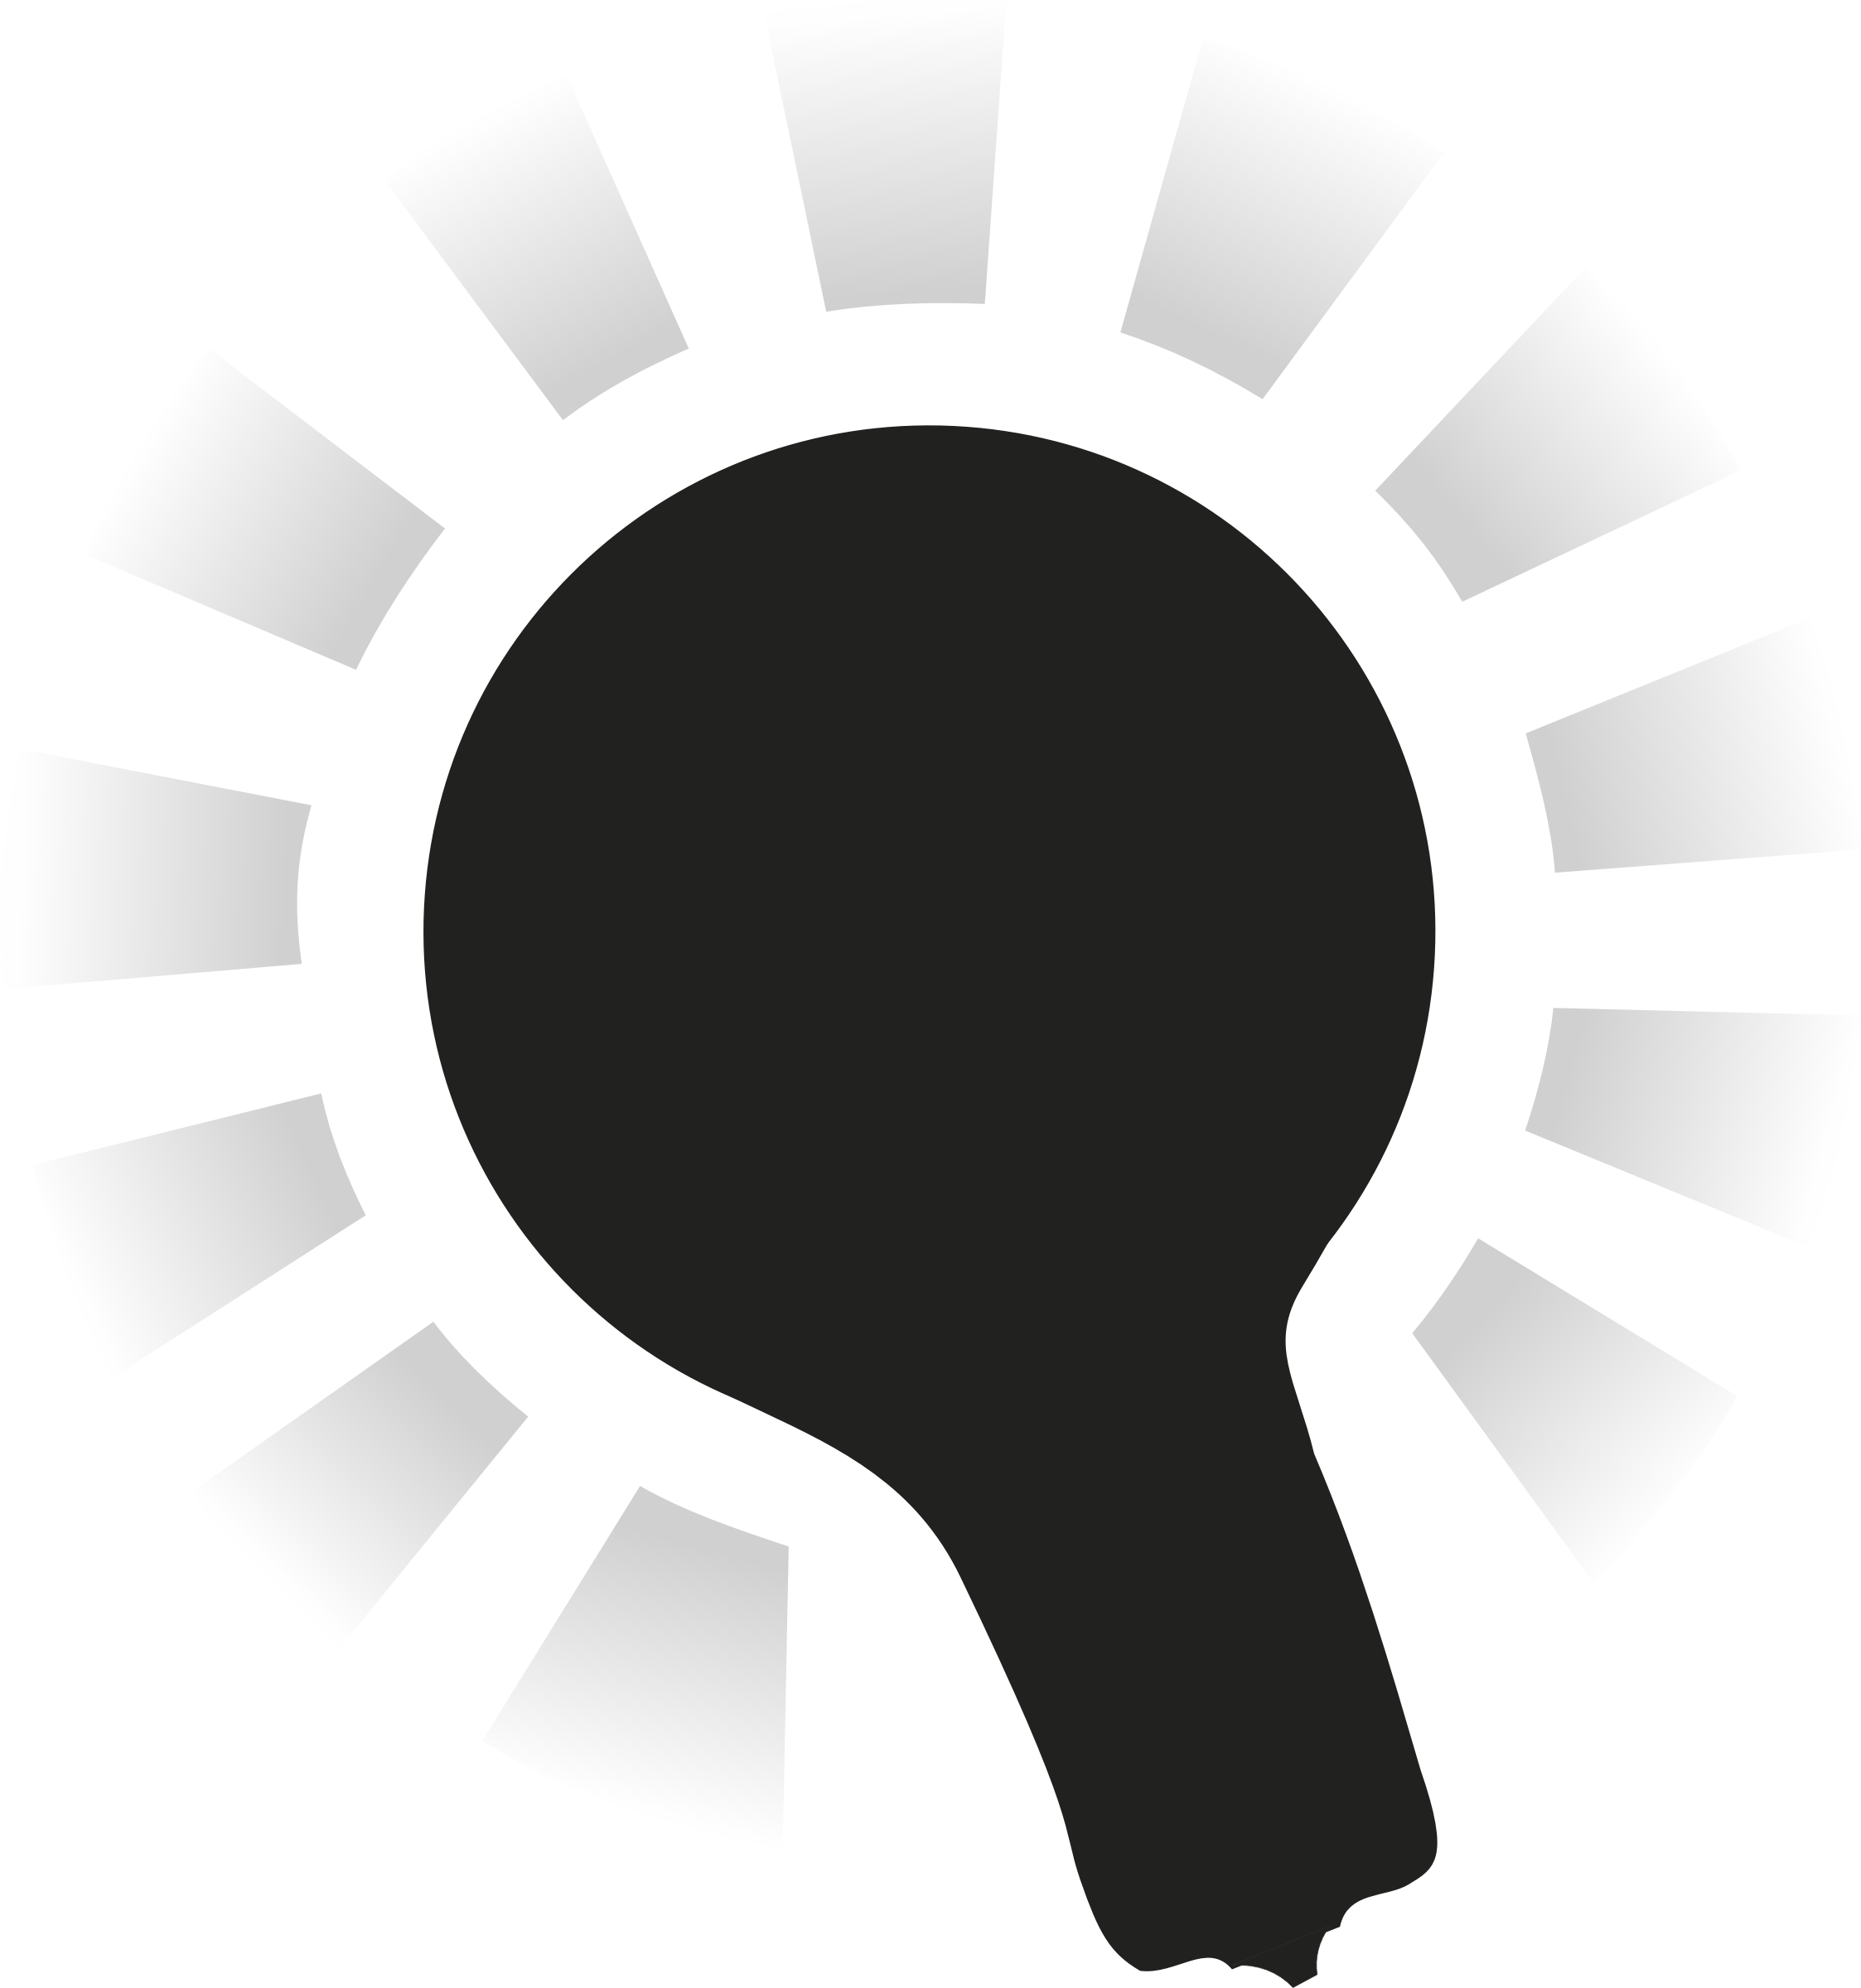 picture free download Halo clipart black and white. Lightbulb with big image